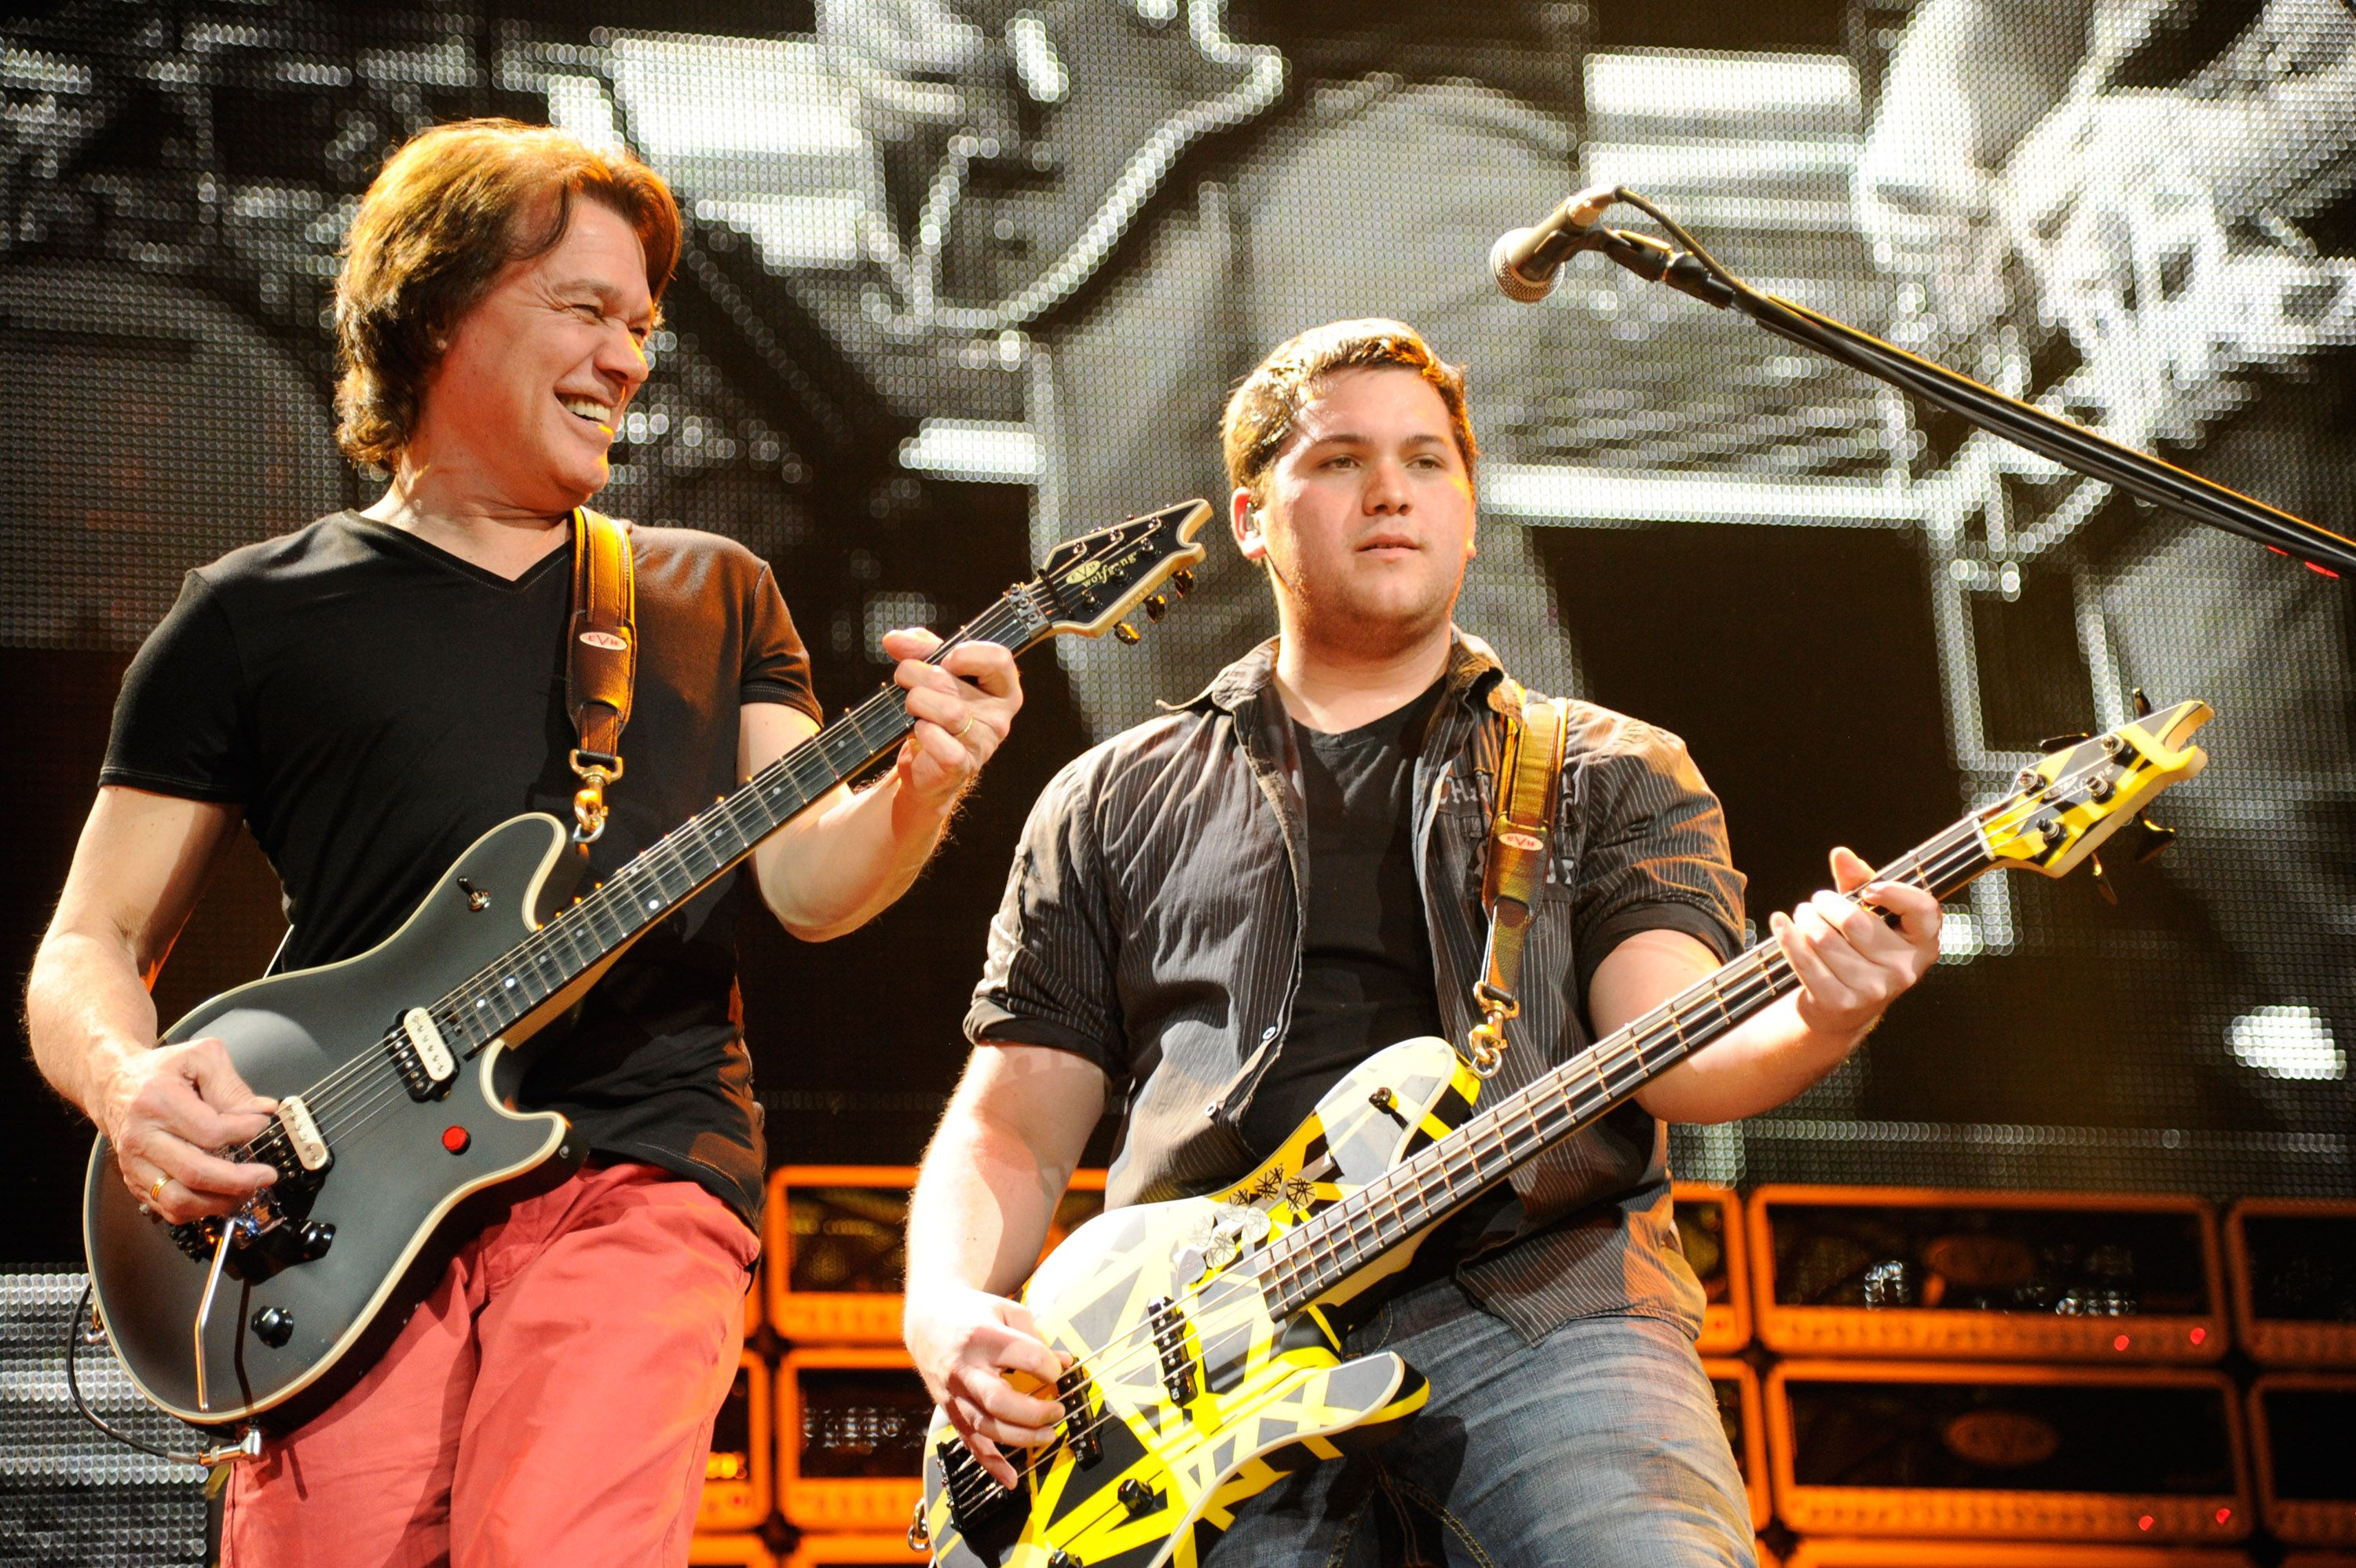 """Eddie Van Halen and Wolfgang Van Halen of Van Halen perform during """"A Different Kind of Truth"""" tour at Madison Square Garden on February 28, 2012 in New York City. 